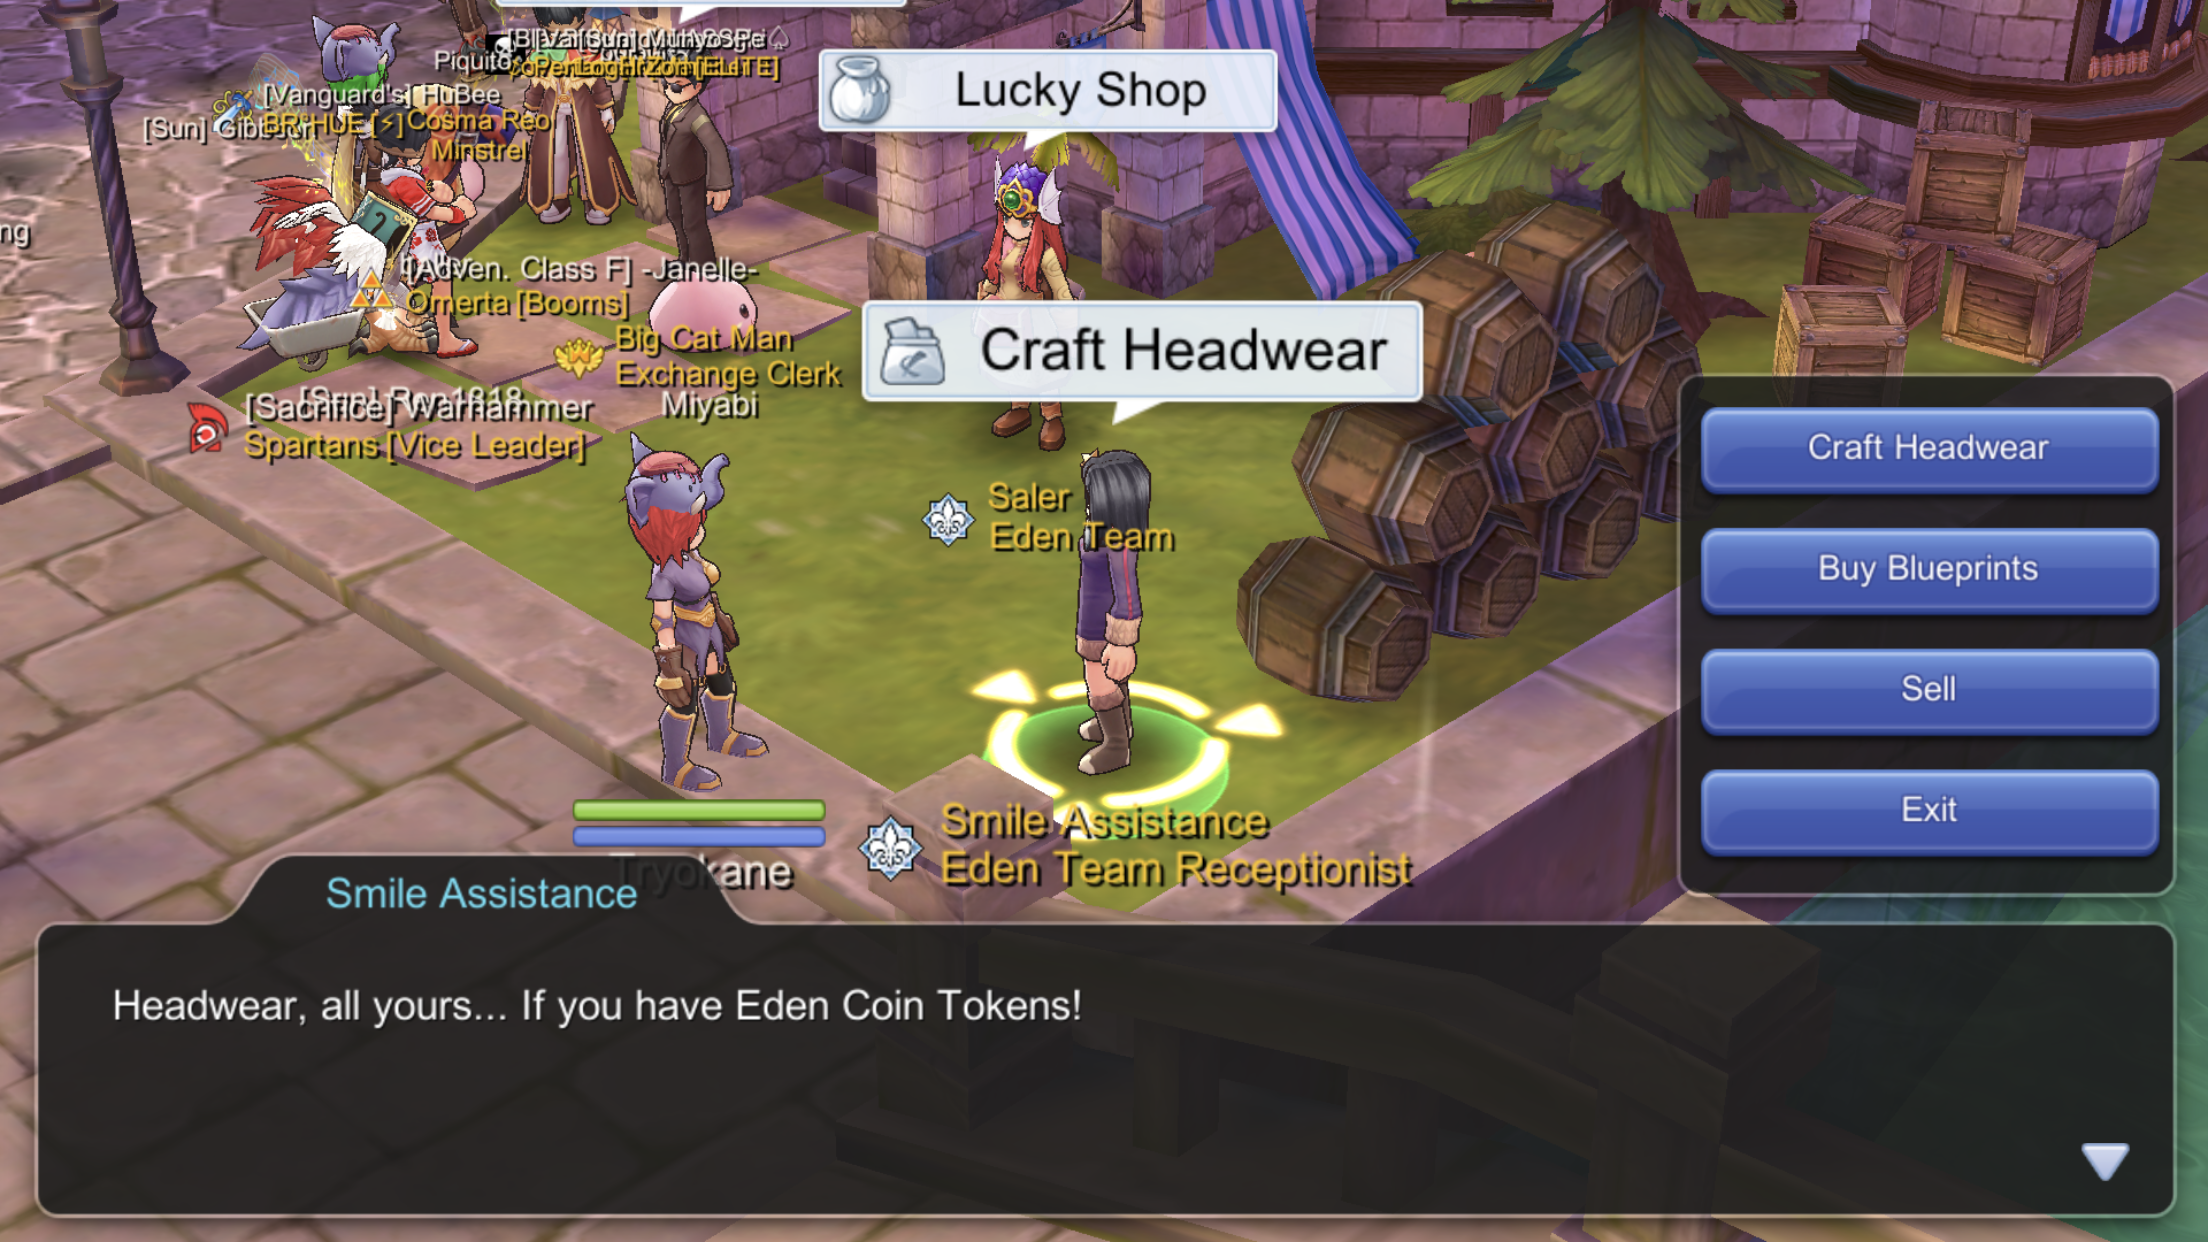 Buying blinker blueprint – ragnarok m eternal love (22-11-18